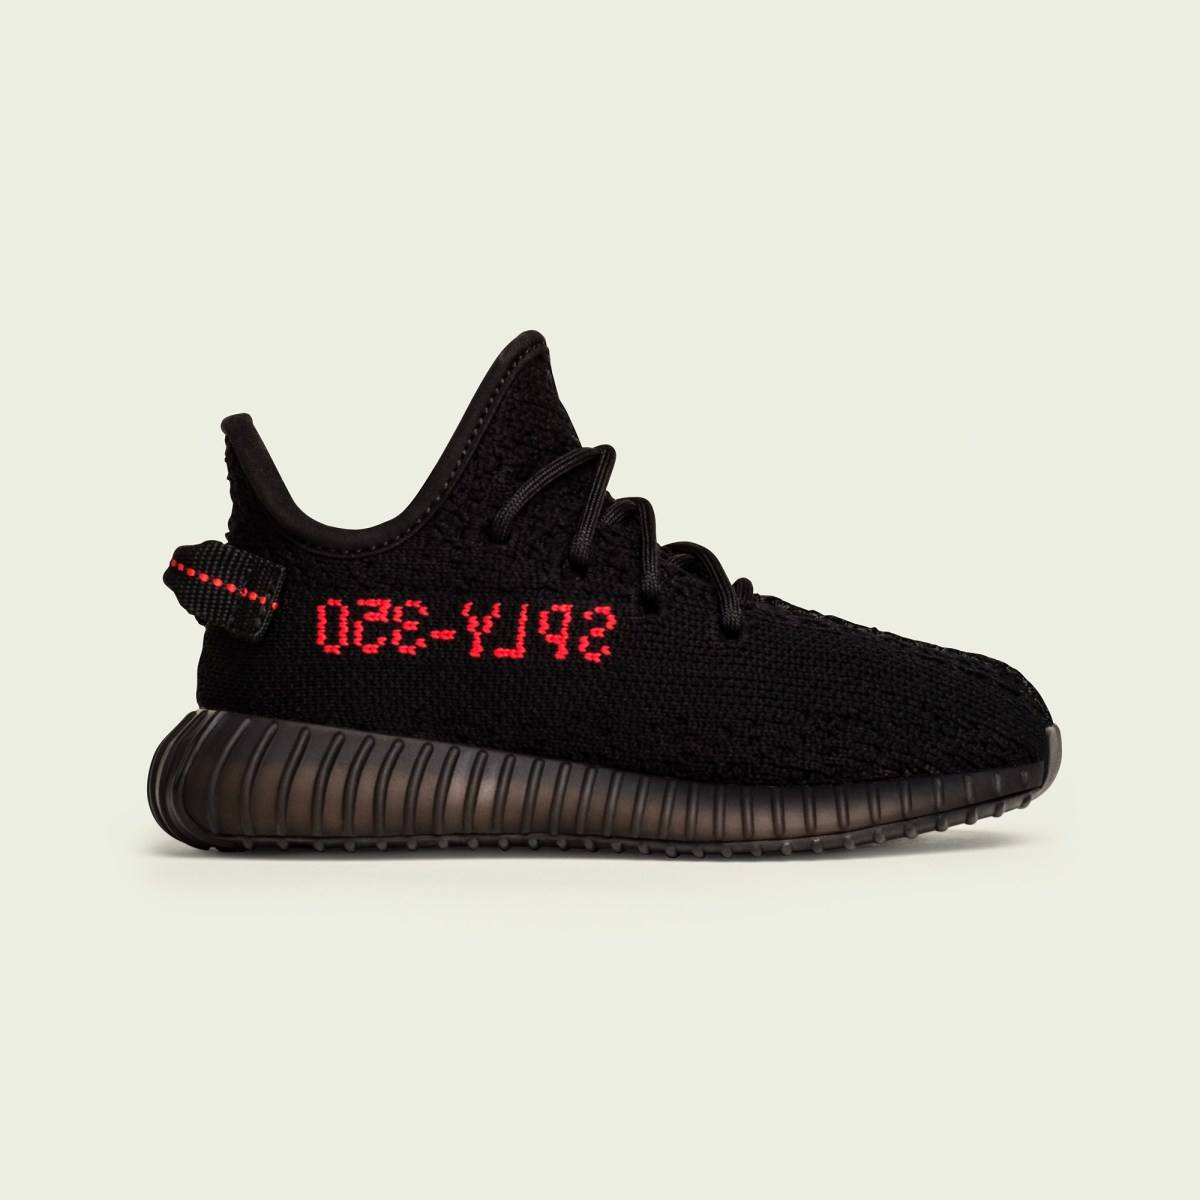 adidas_YEEZY_350_V2_RB_Lateral_Right-red2-infant